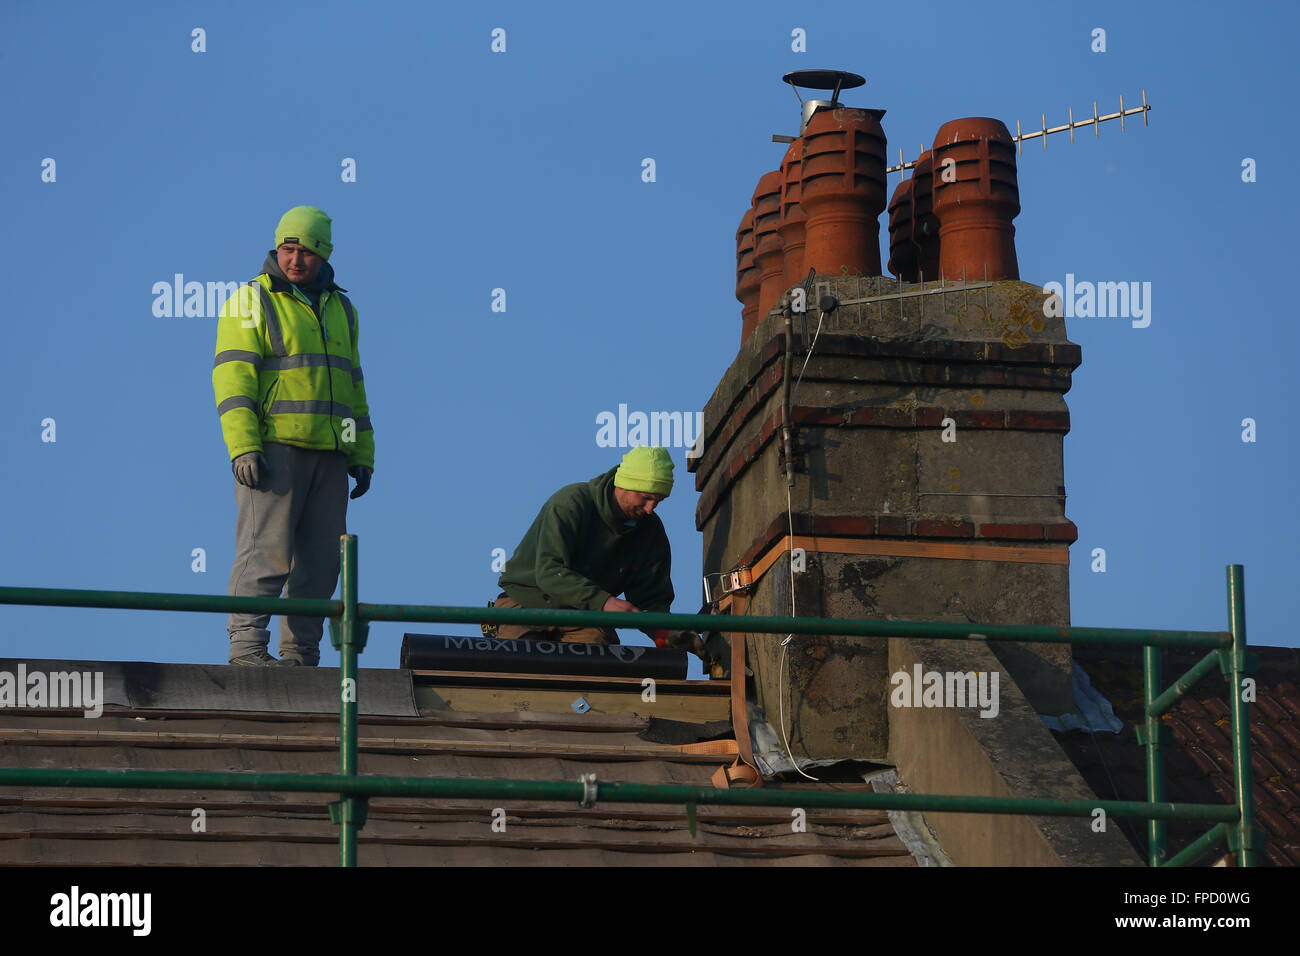 Wg Builders builders removing a roof to build a loft conversion on a